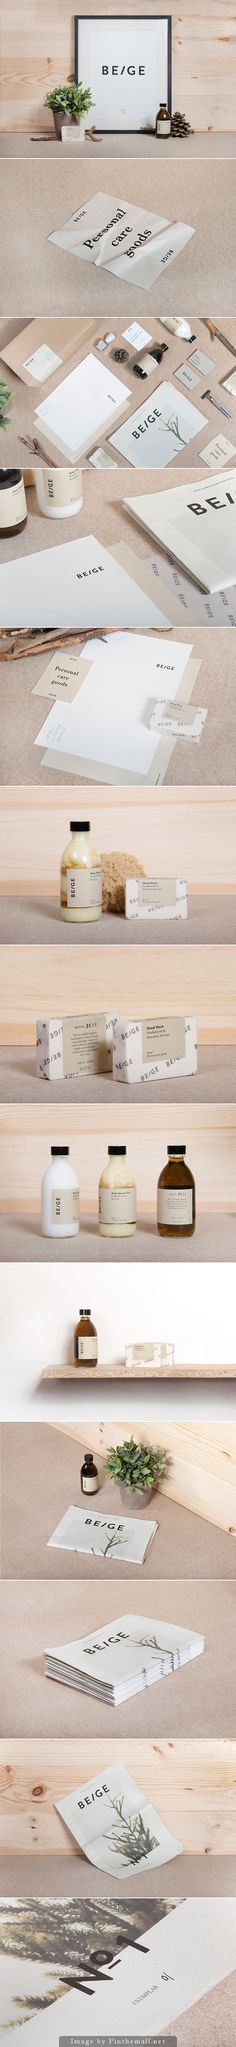 BEIGE Art Direction, Branding, Graphic Design